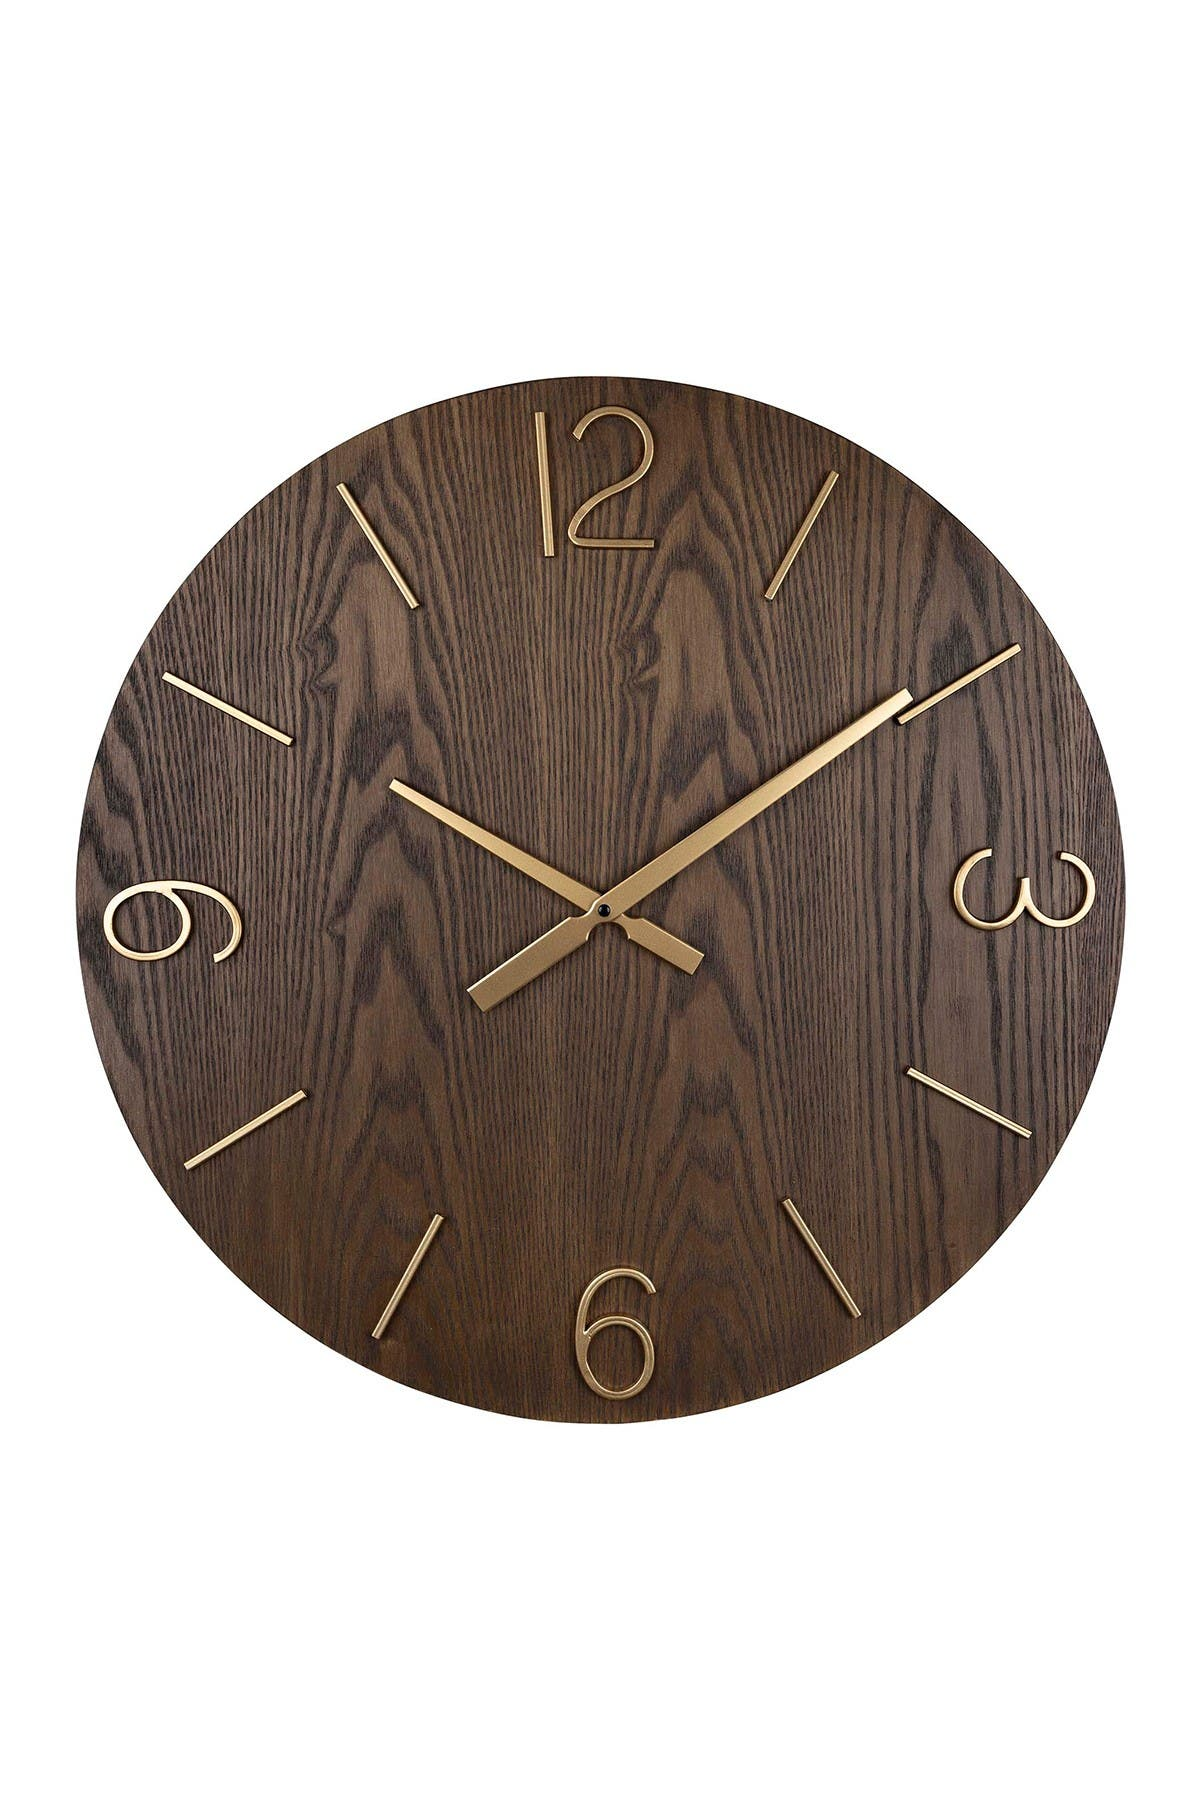 Image of Stratton Home Bennett Wood Wall Clock